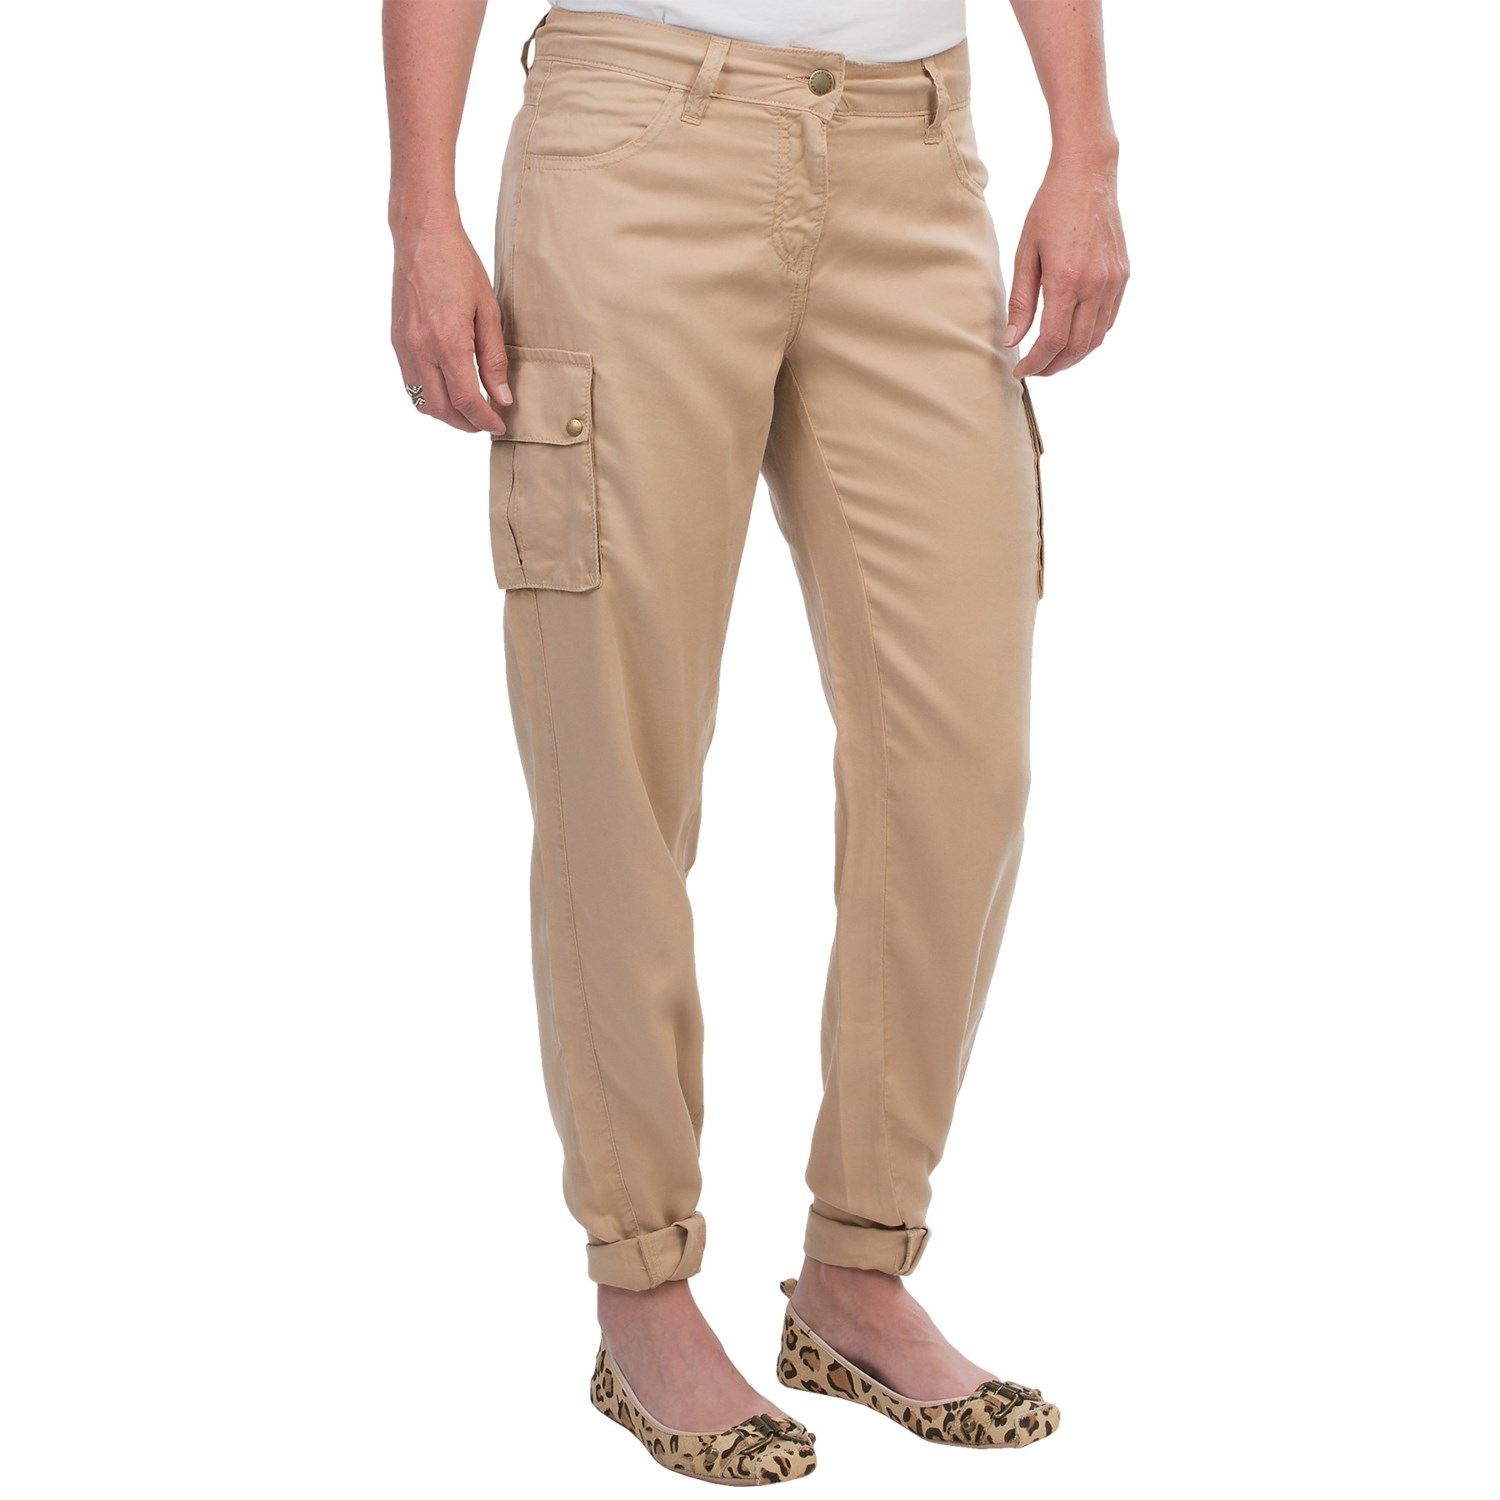 Barbour Commando Loose Fit Cargo Pants (For Women) - Save 81%